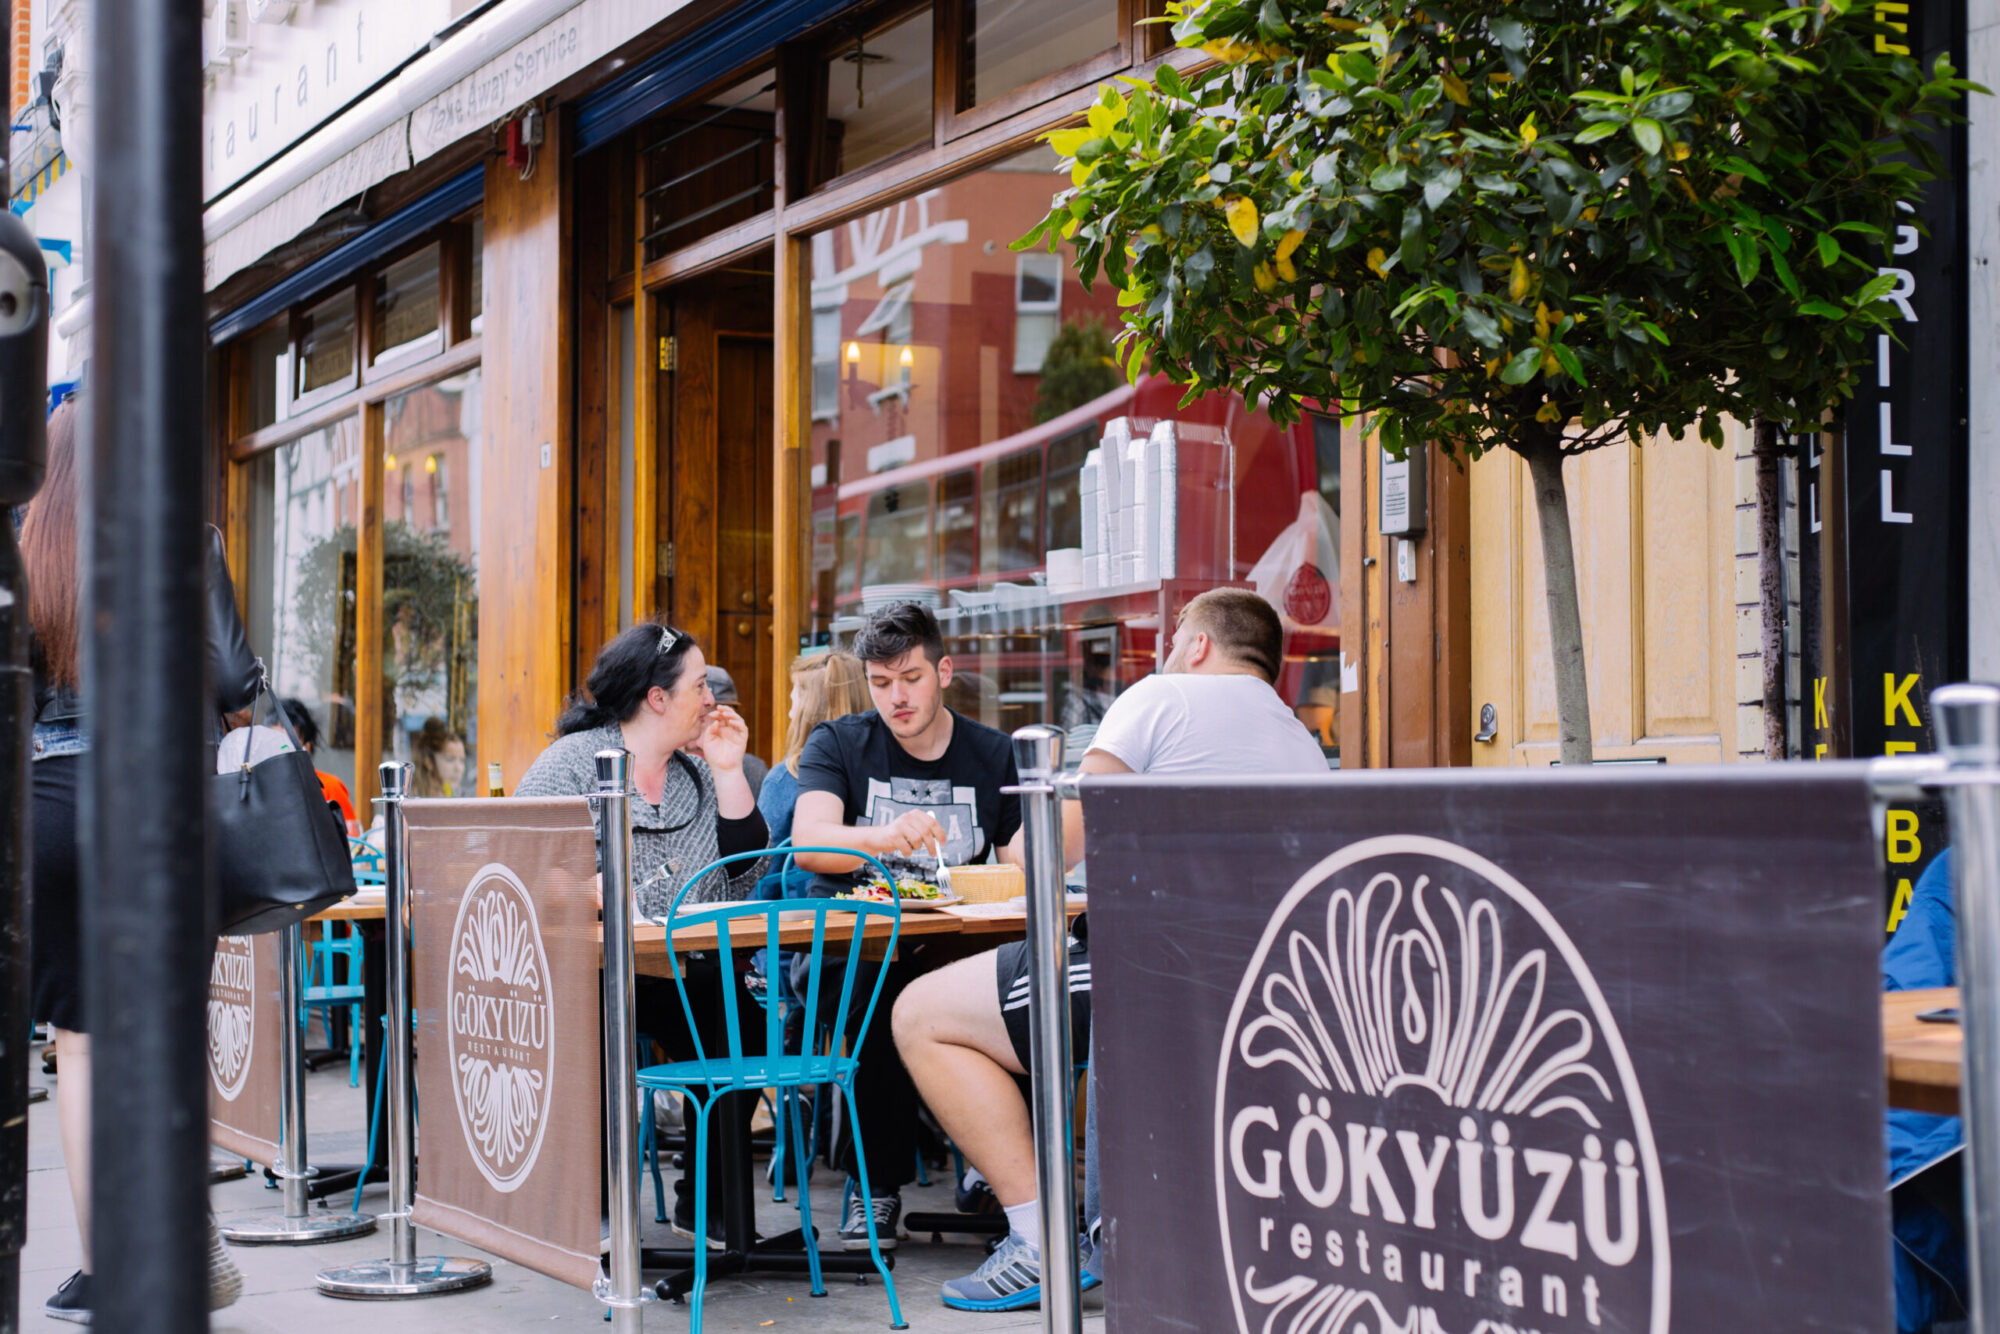 People eating in the outside area of Gokyuzu, a Turkish restaurant in Harringay.